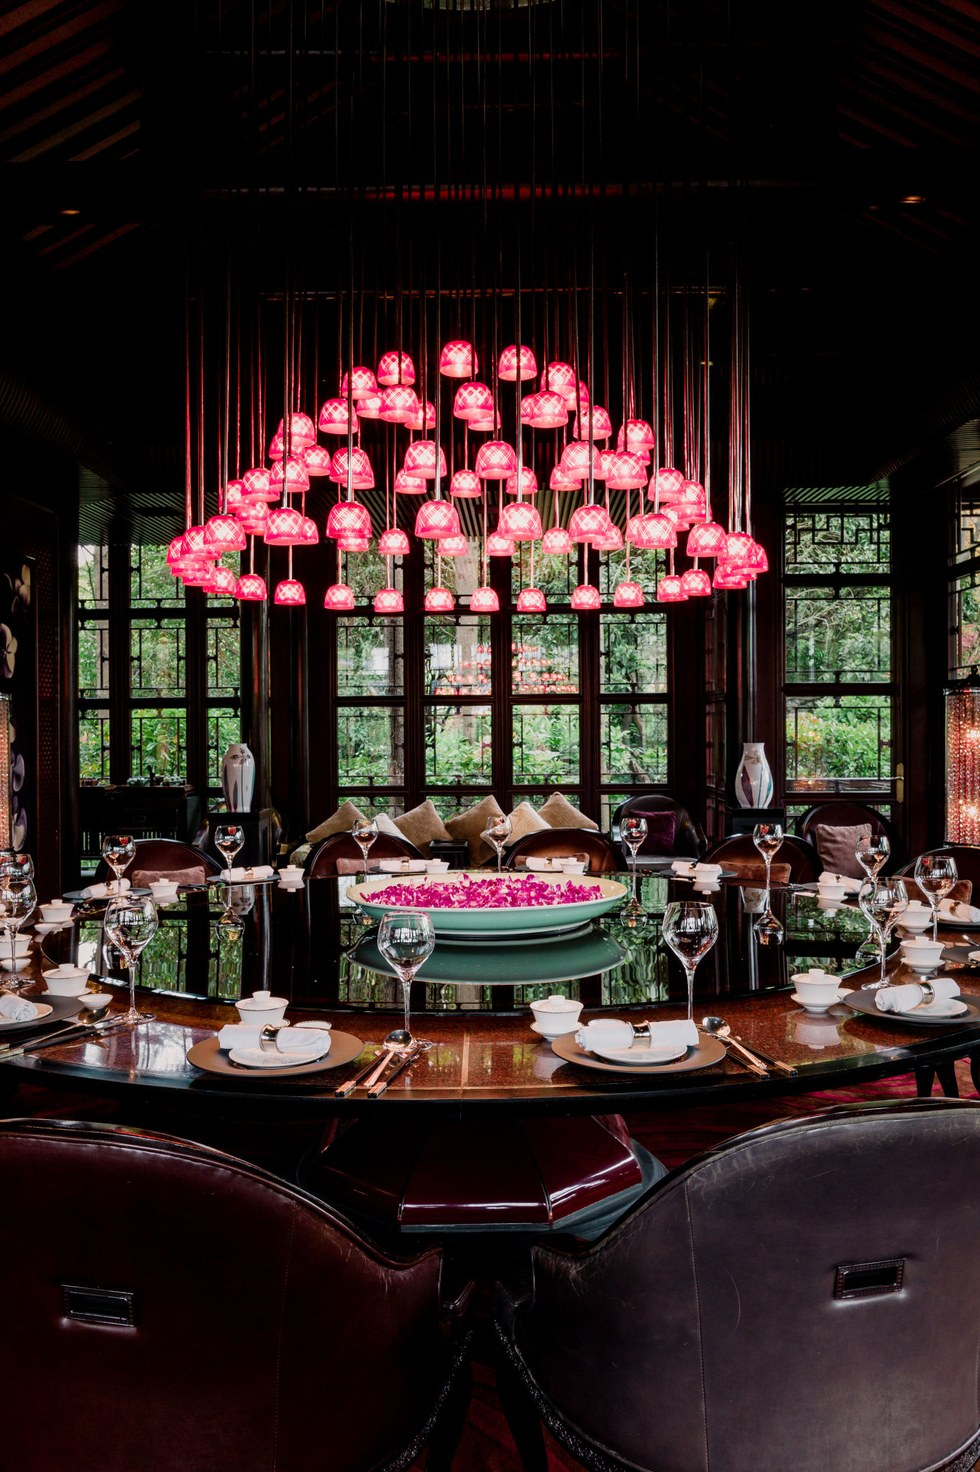 The dining room at the Four Seasons